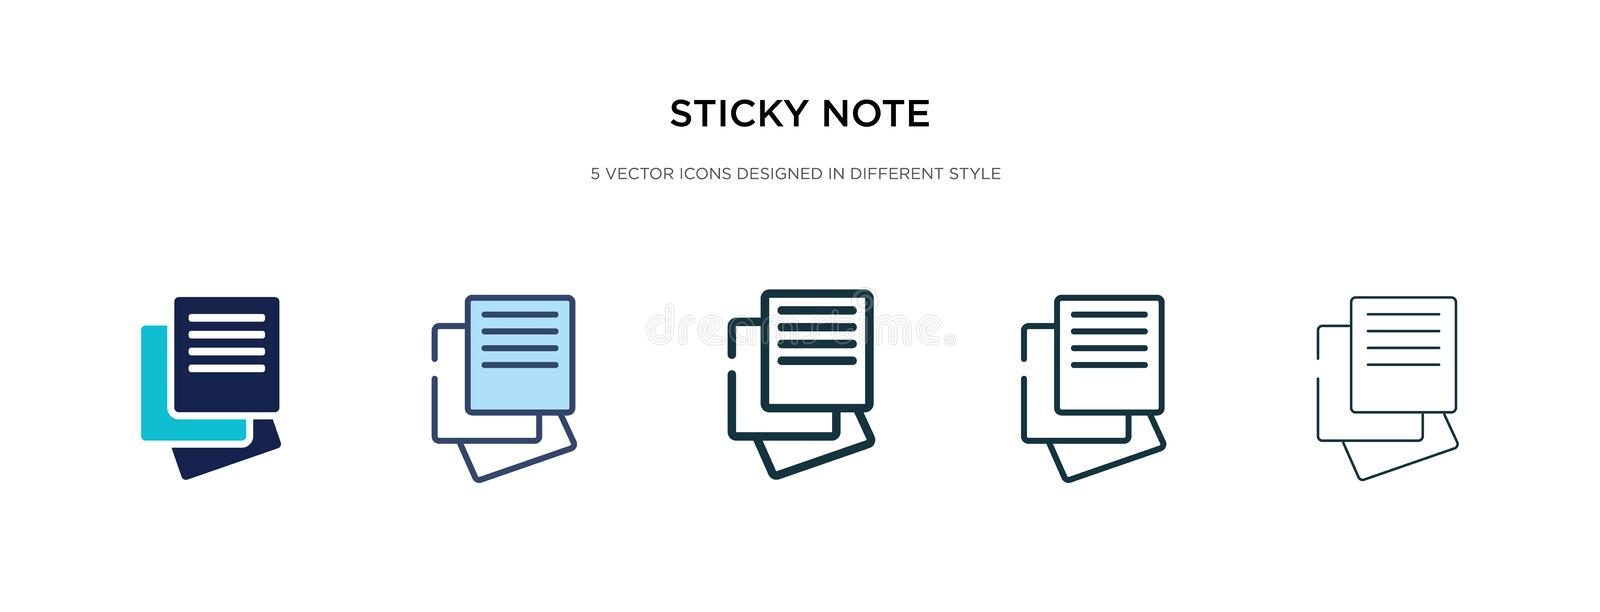 Sticky note icon in different style vector illustration. two colored and black sticky note vector icons designed in filled, royalty free illustration